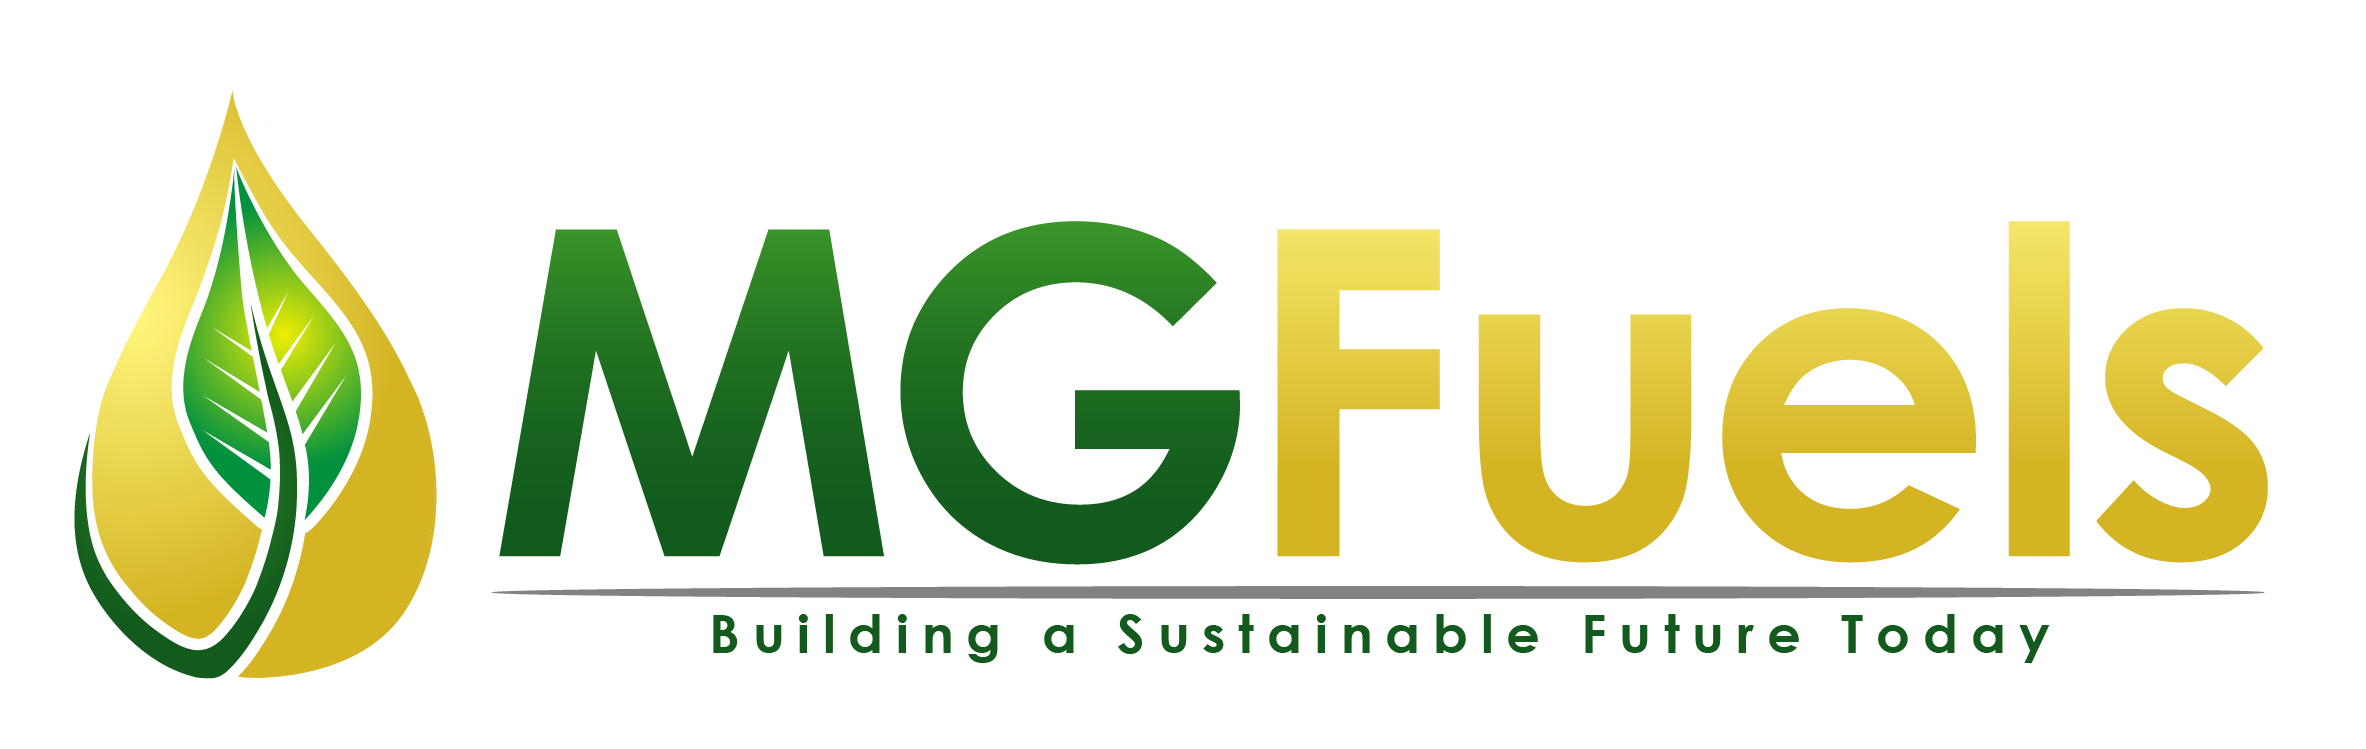 MG Fuels, LLC 3175 Commercial Avenue, Suite 202, Northbrook, IL 60062 1-844-643-8357  (1-844-MGFUELS)